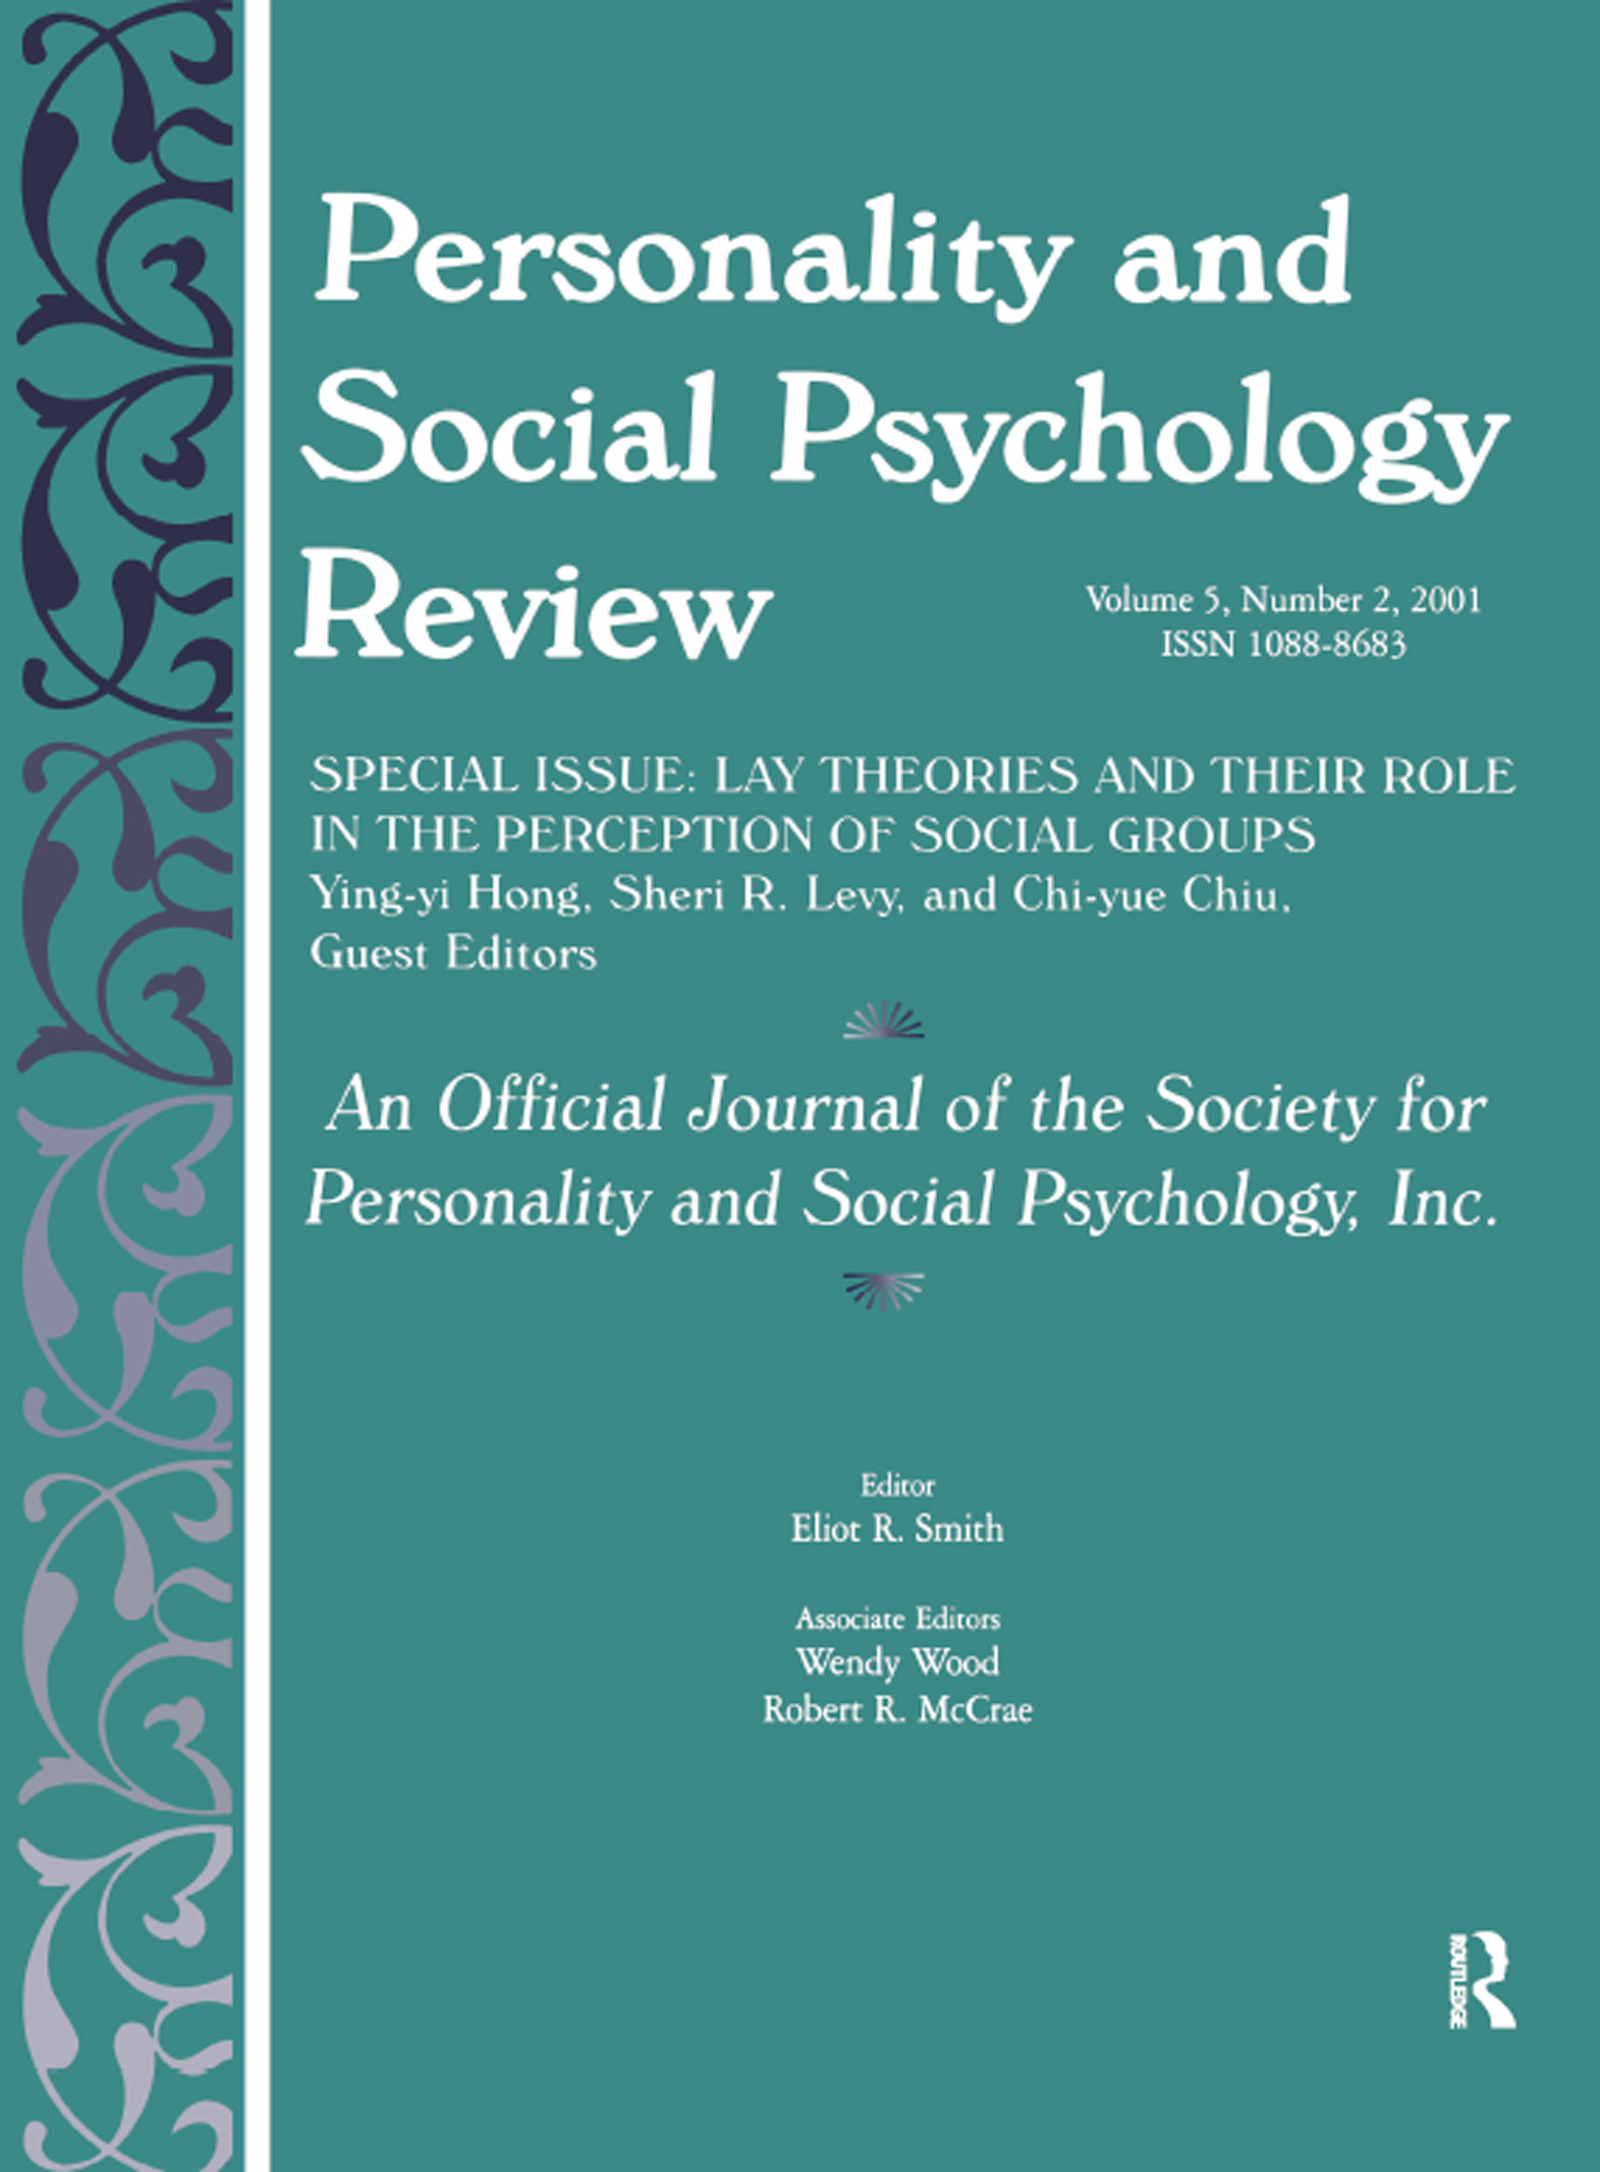 Lay Theories and Their Role in the Perception of Social Groups: A Special Issue of Personality and Social Psychology Review (Paperback) book cover